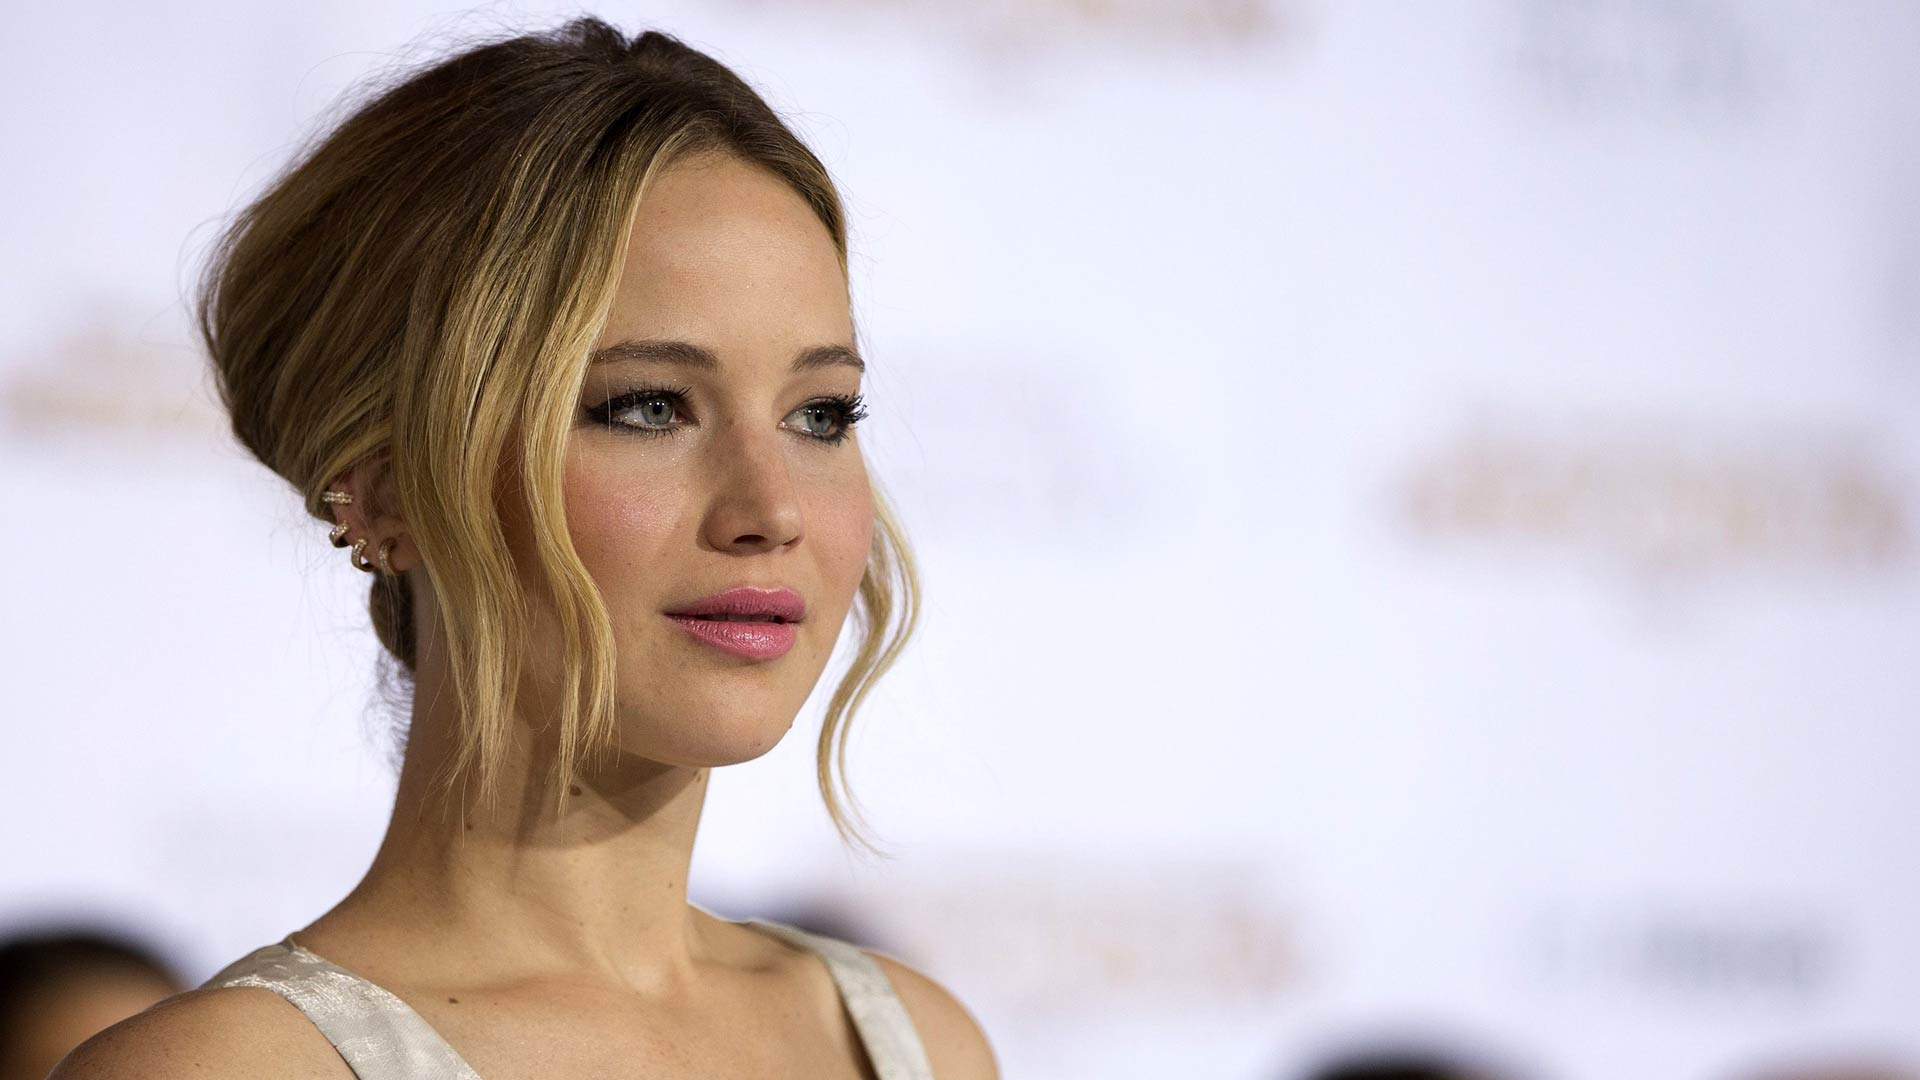 Jennifer lawrence 2015 wallpapers HD 1080p for your desktop 1920X1080 1920x1080